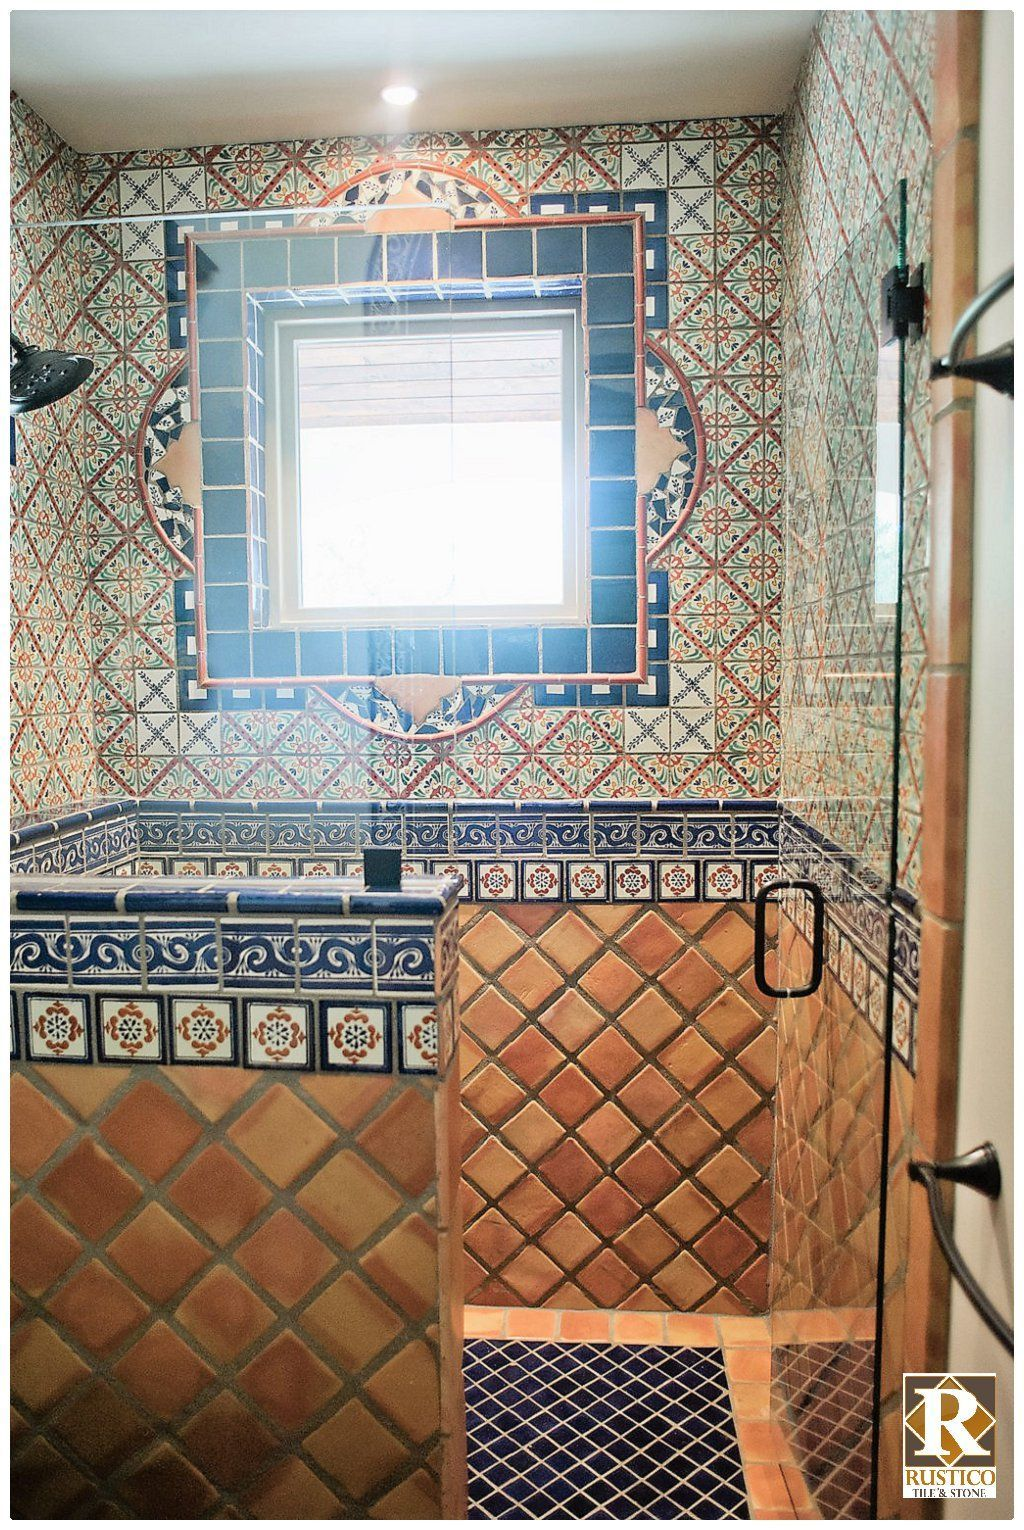 Spanish Tile Shower Floor To Ceiling Yep That S Mexican Talavera Tile Saltillo Tile Cover In 2020 With Images Mexican Tile Bathroom Mexican Style Decor Spanish Style Bathrooms